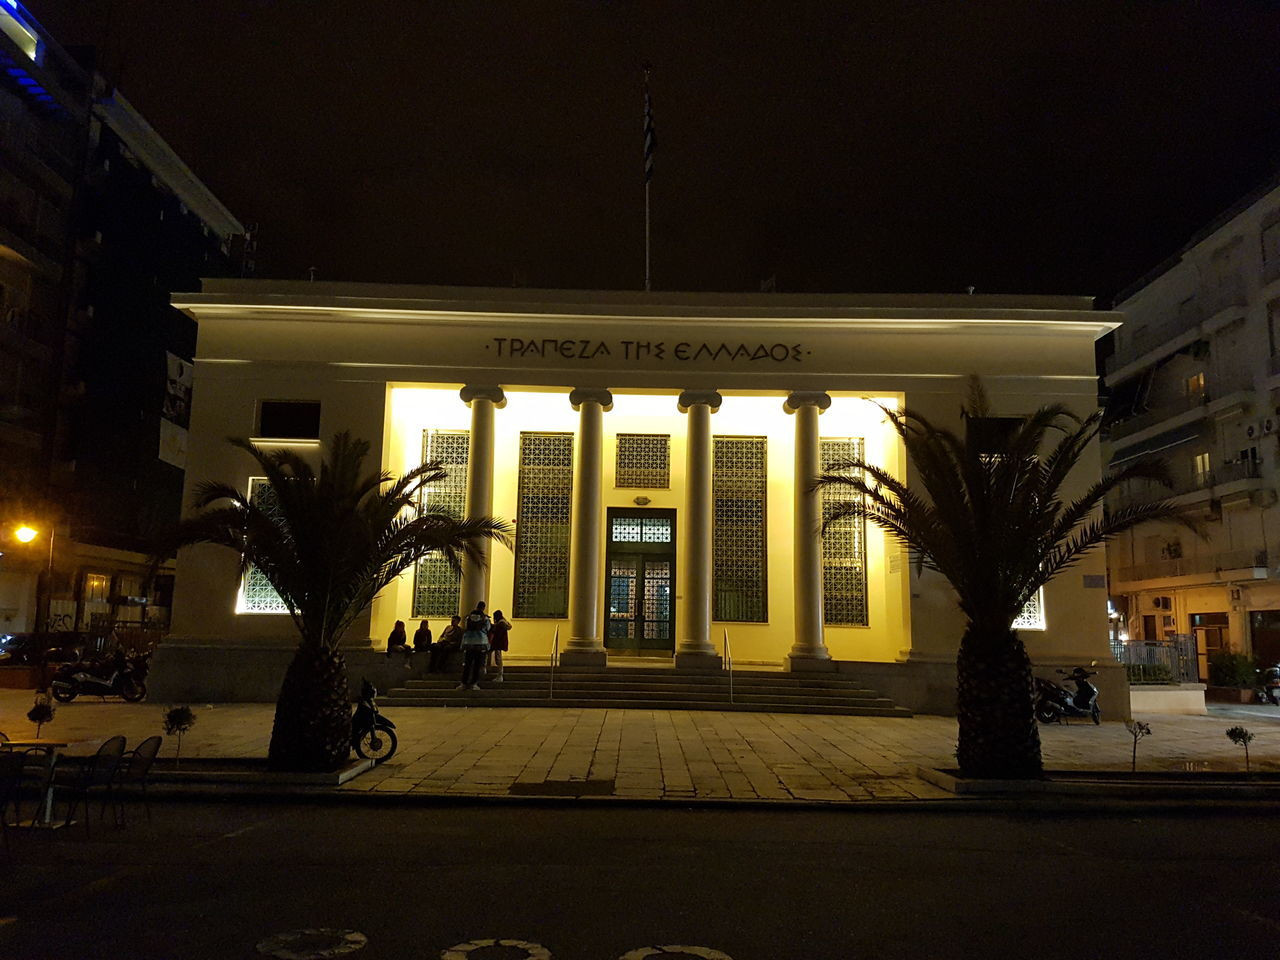 Greek Central Bank Greece Architecture Built Structure No People Outdoors Travel Destinations Bank Arts Culture And Entertainment World Holidays Aroundtheworld Travel Nightphotography Illuminated Traveling Photography Traditional Luxurylifestyle  The City Light Street Light City Night Lights Night Light Light Close-up History Architecture